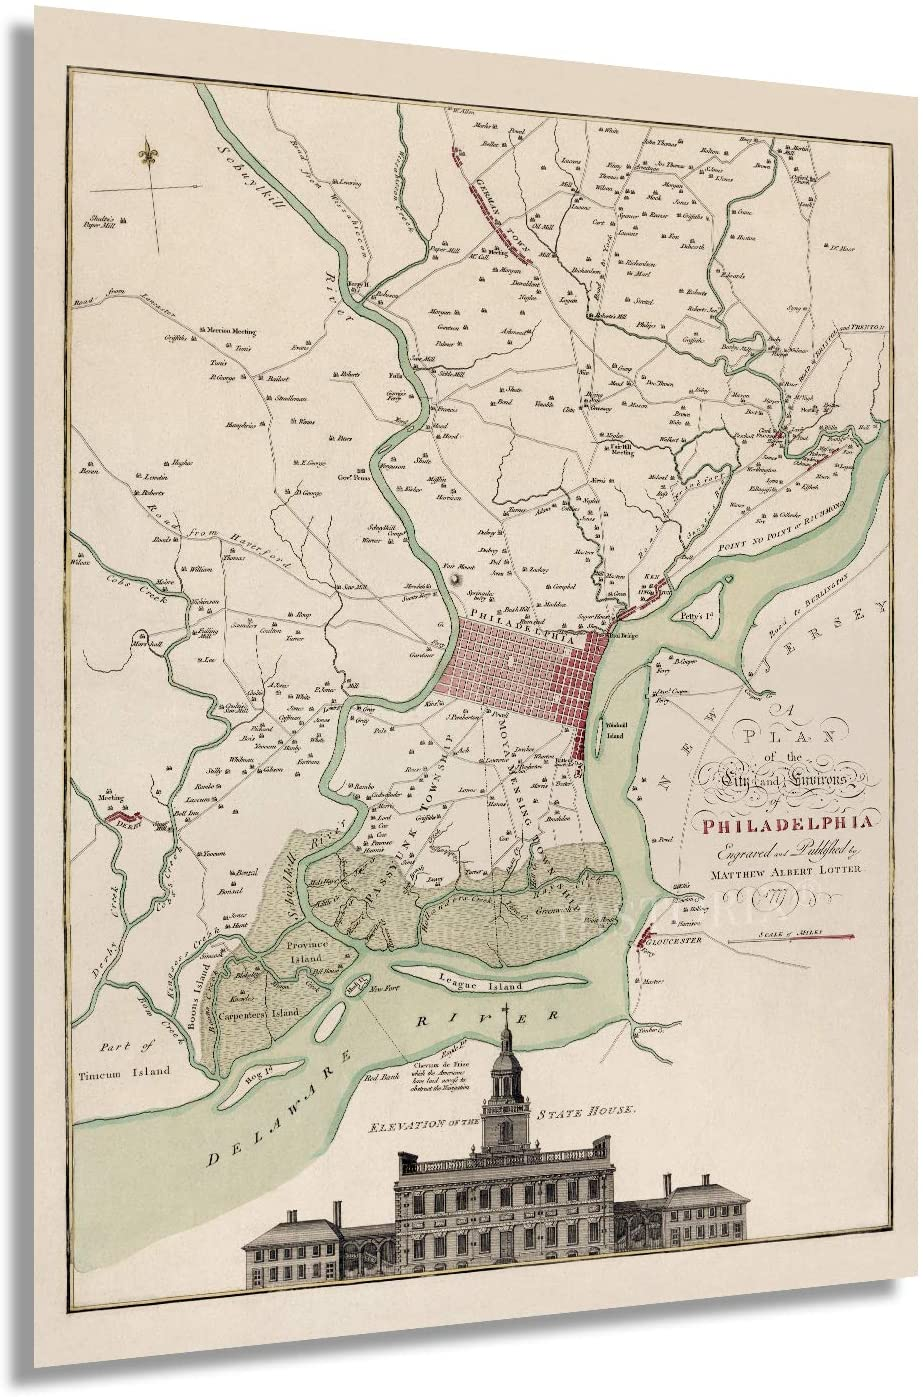 1777 A plan of the city and environs of Philadelphia